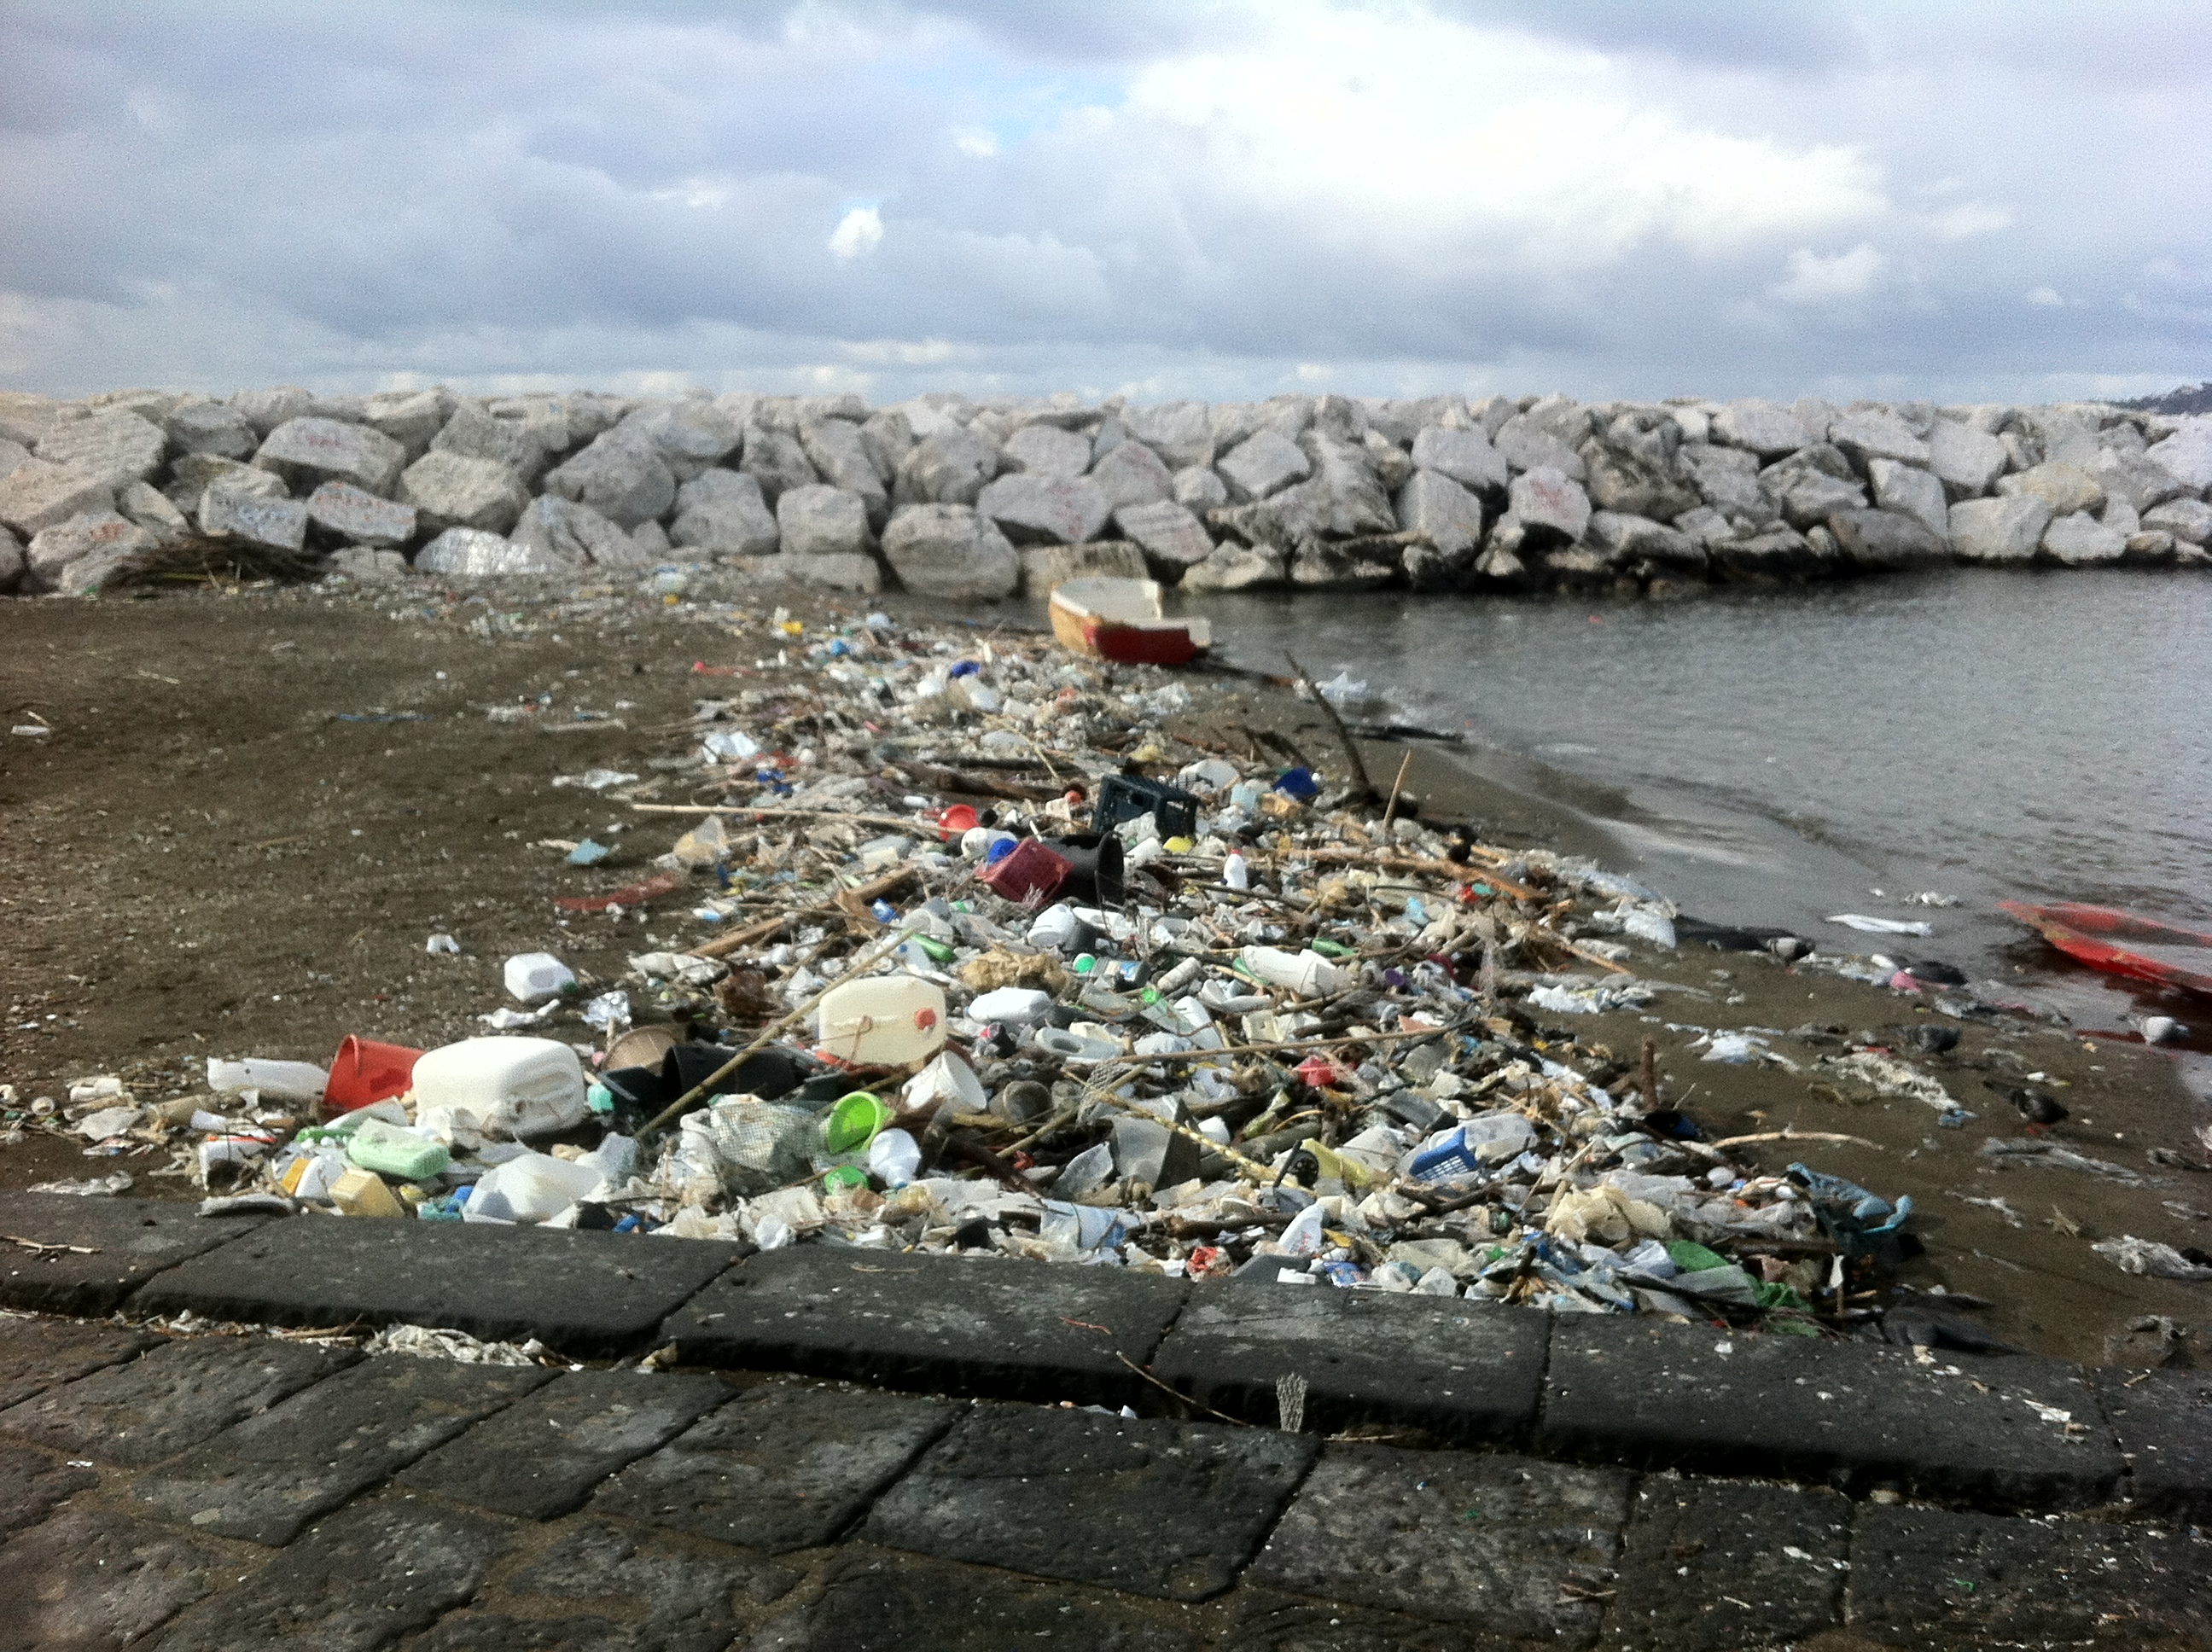 Trash Art The Italian Artist Moreno Di Trapani Has Created A Unique Installation In Reaction To Garbage Crisis Naples Italy Placed